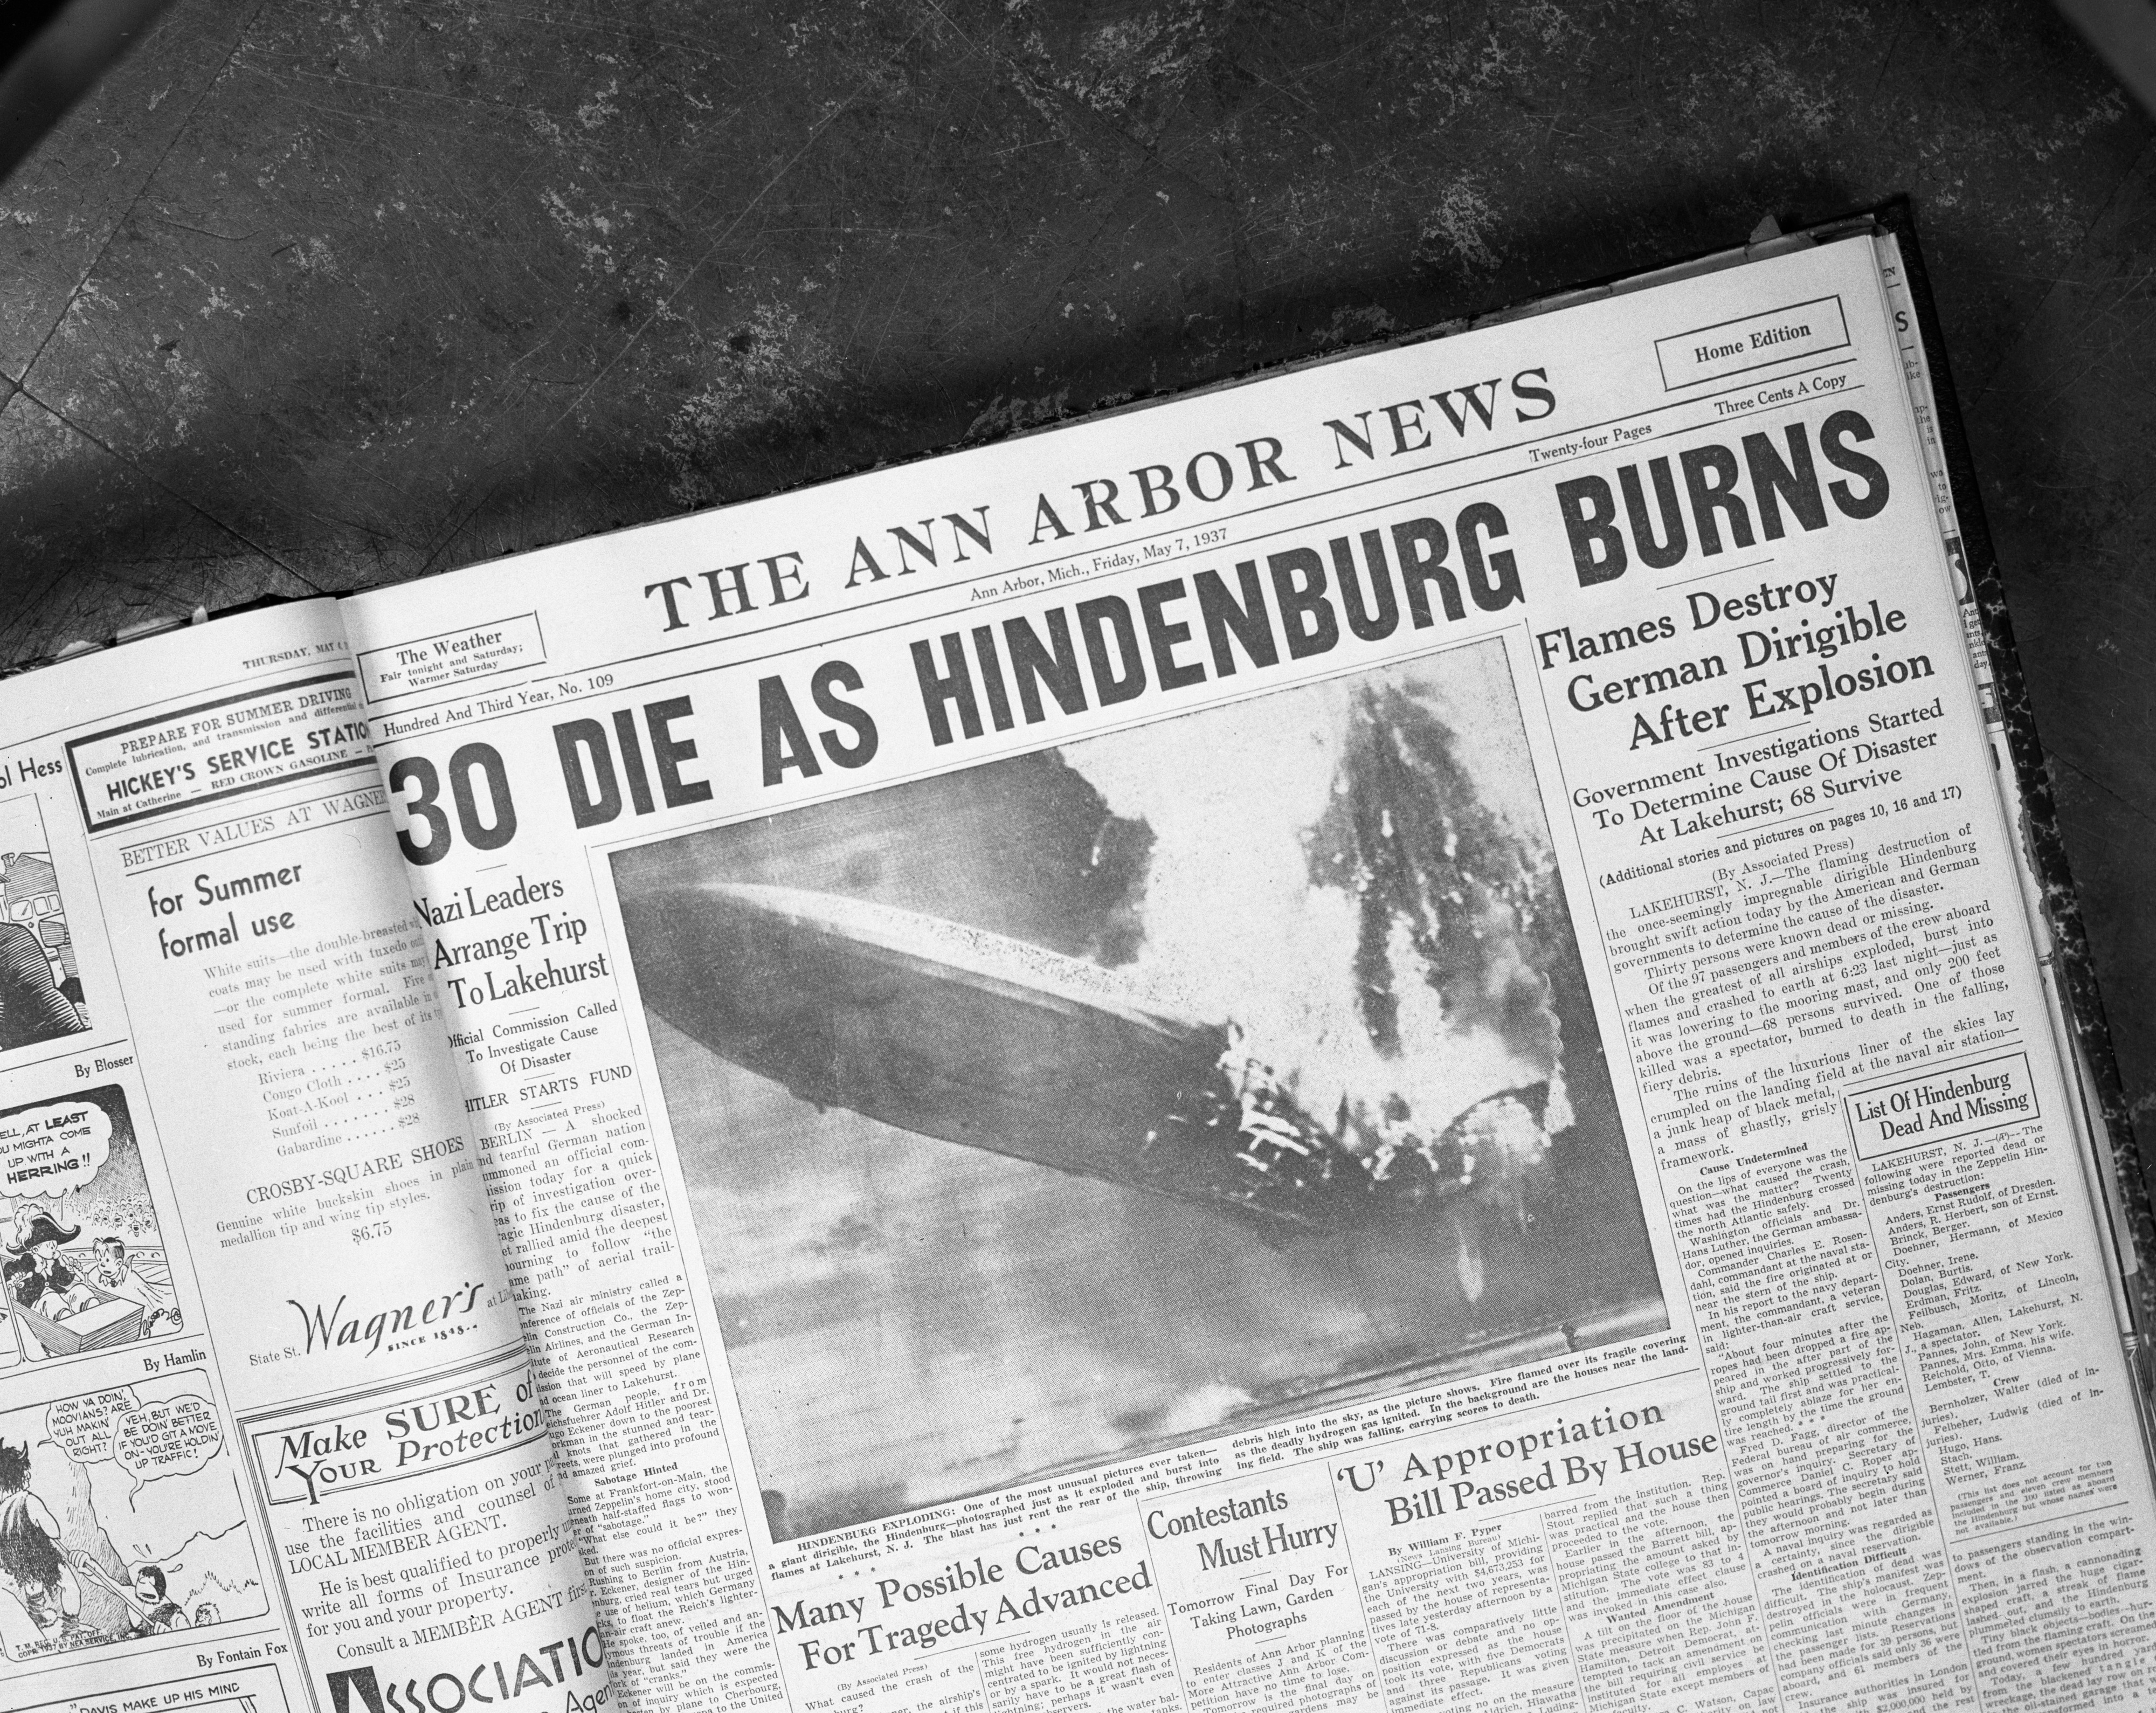 Front page of the May 7, 1937 issue of the Ann Arbor News featuring headline on Hindenburg disaster, October 1966 image